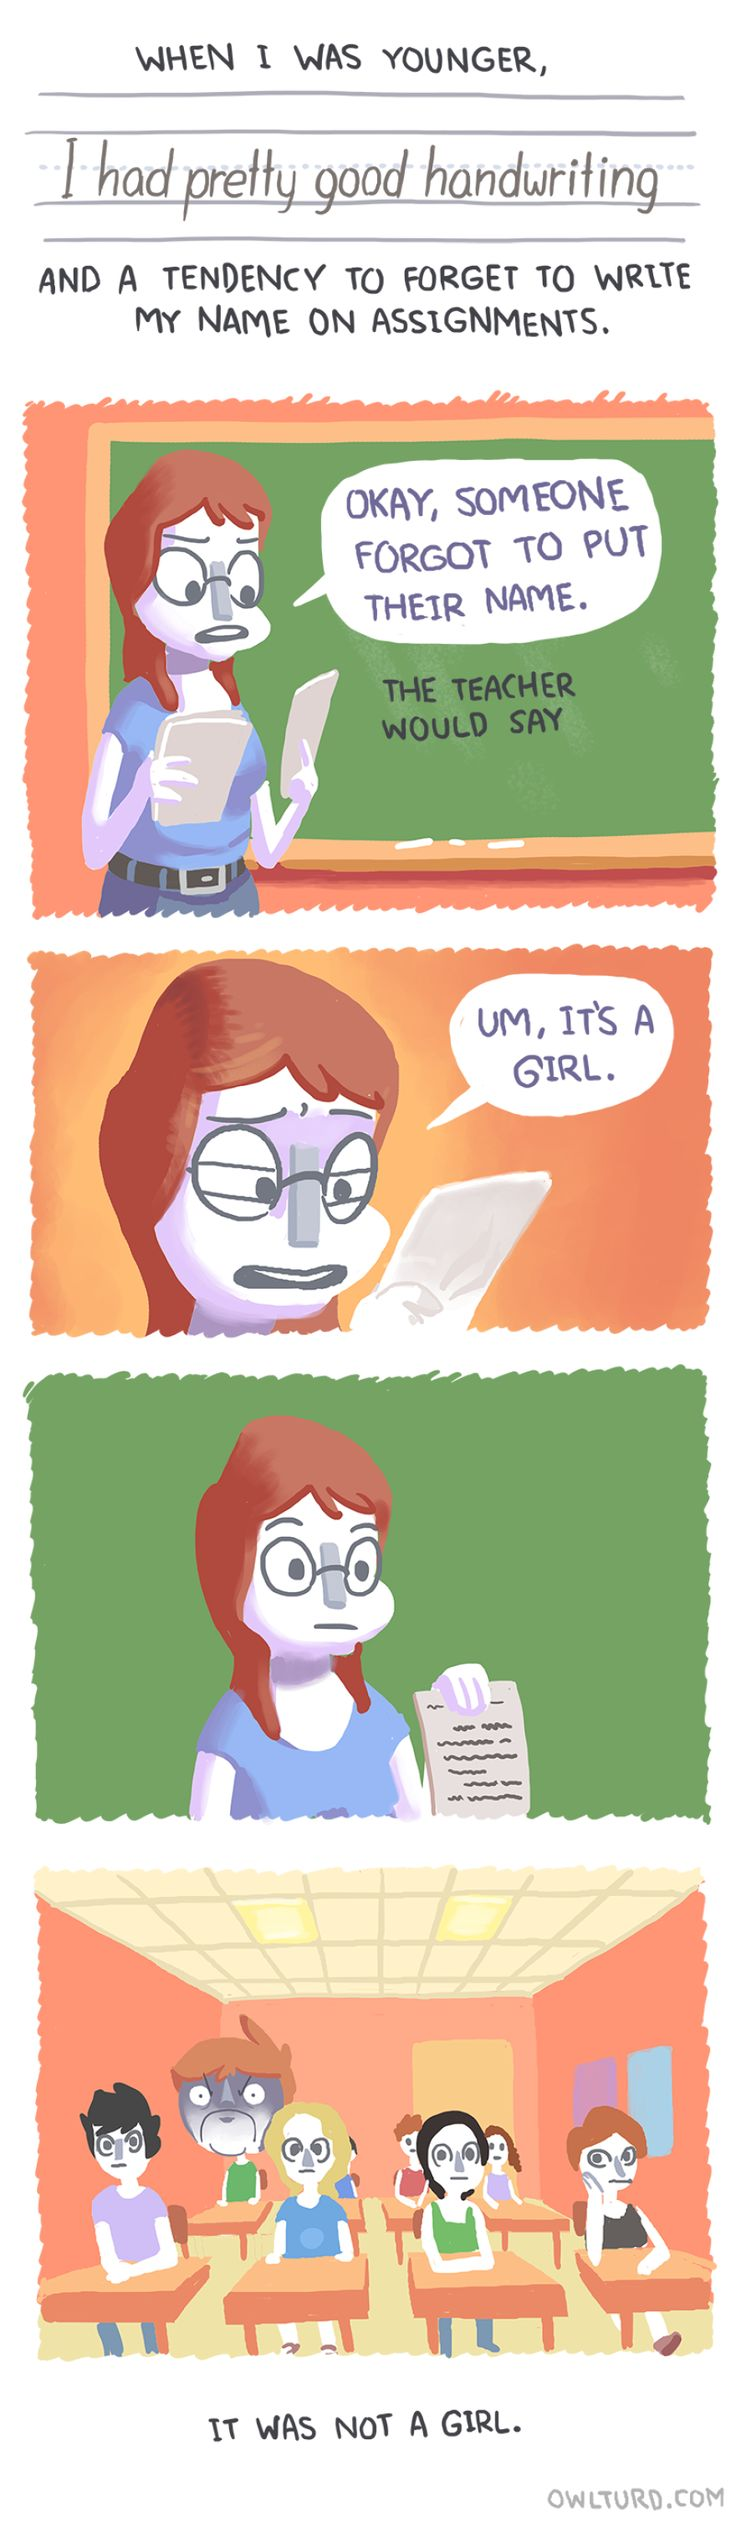 Owl Turd Comix by college senior Shenanigansen are funny and absurd. [Bored Panda]